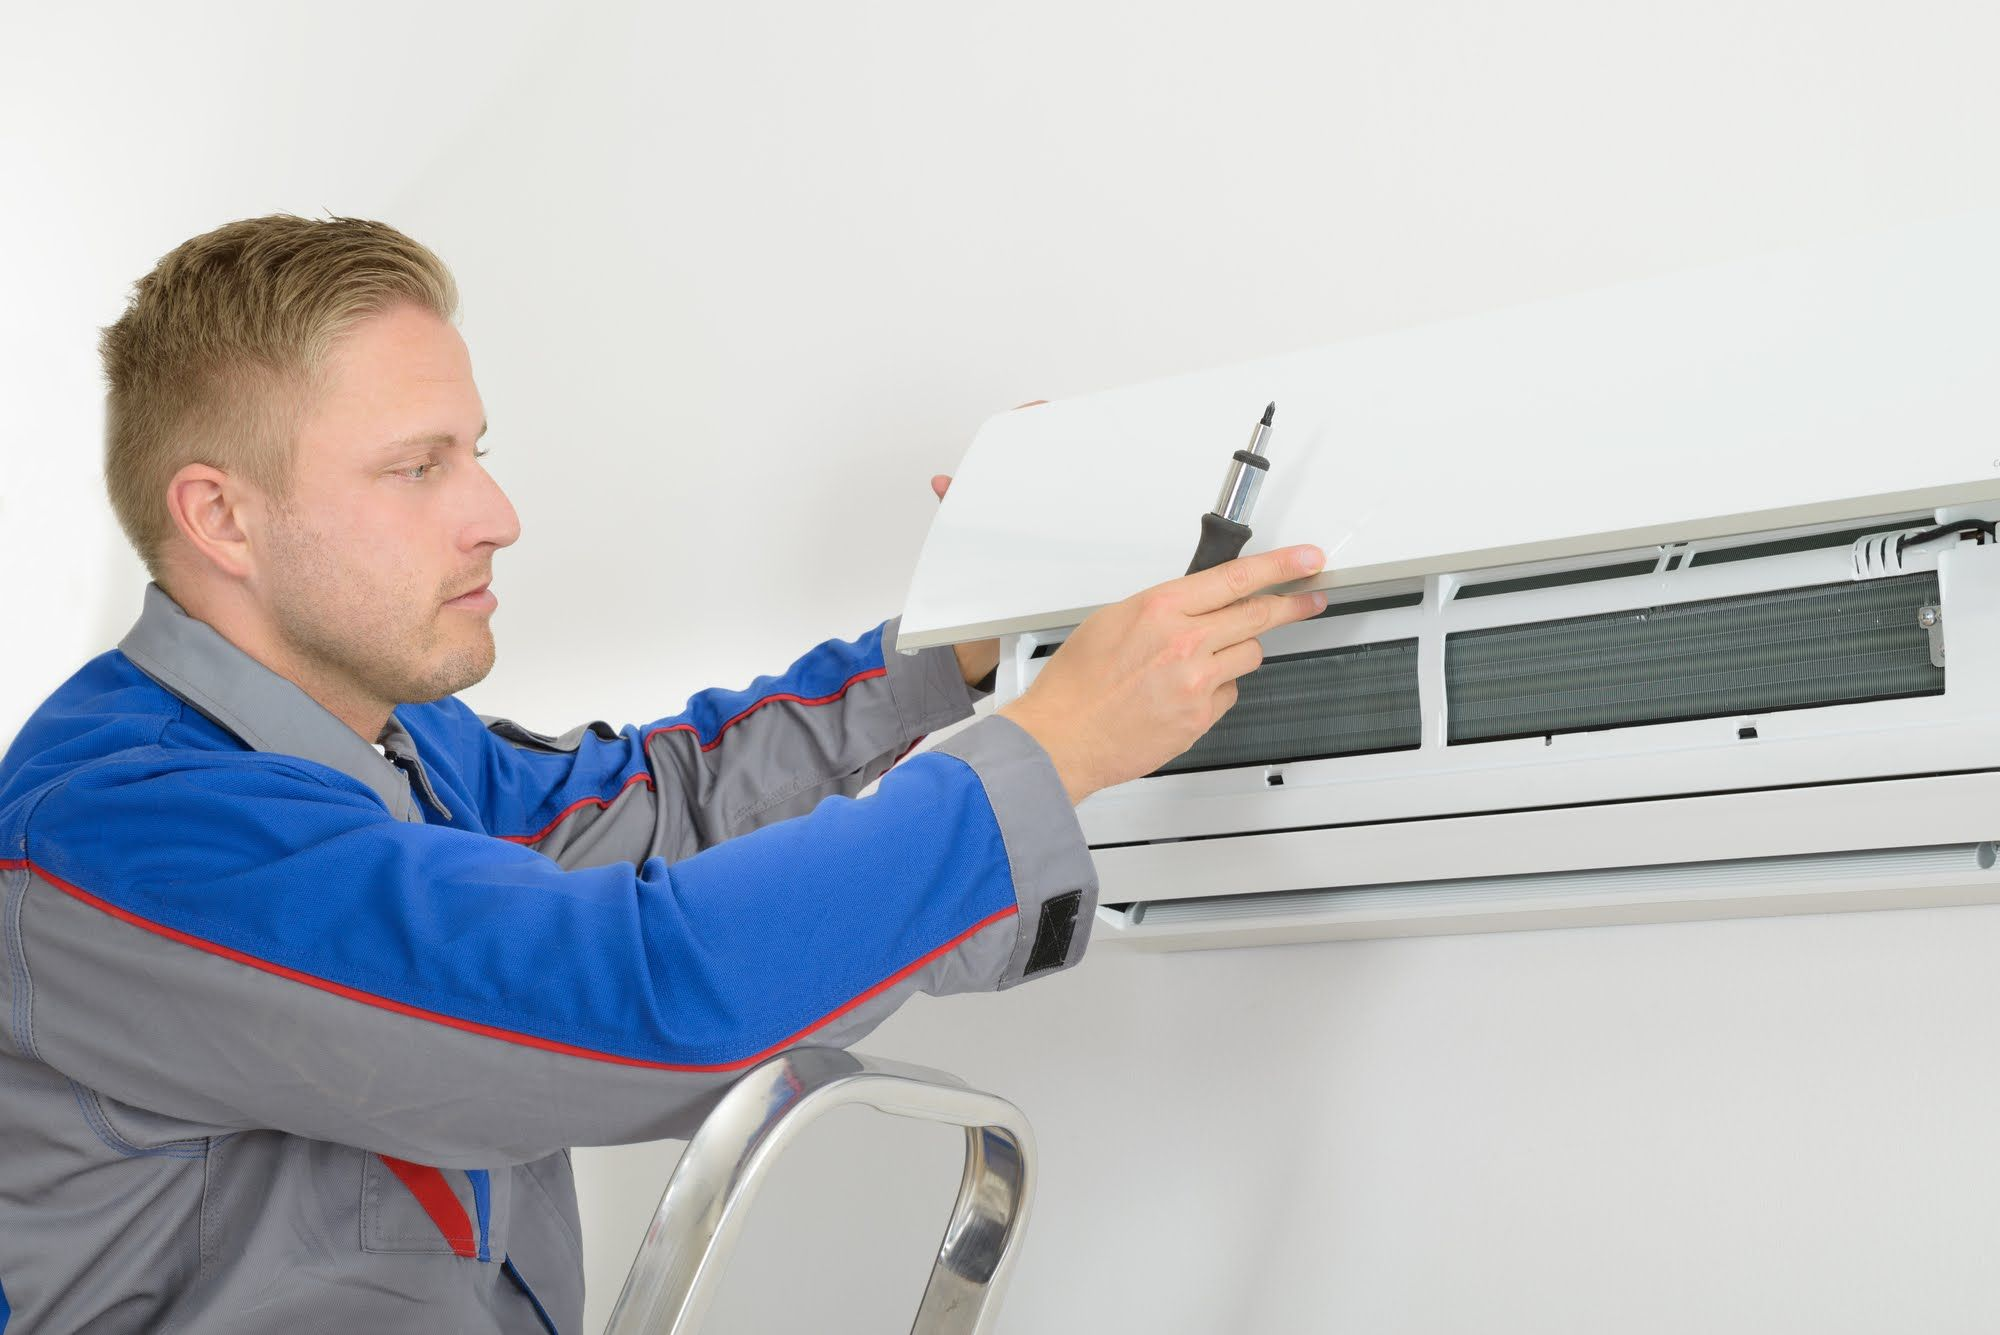 The air conditioner will take time to cool down the room